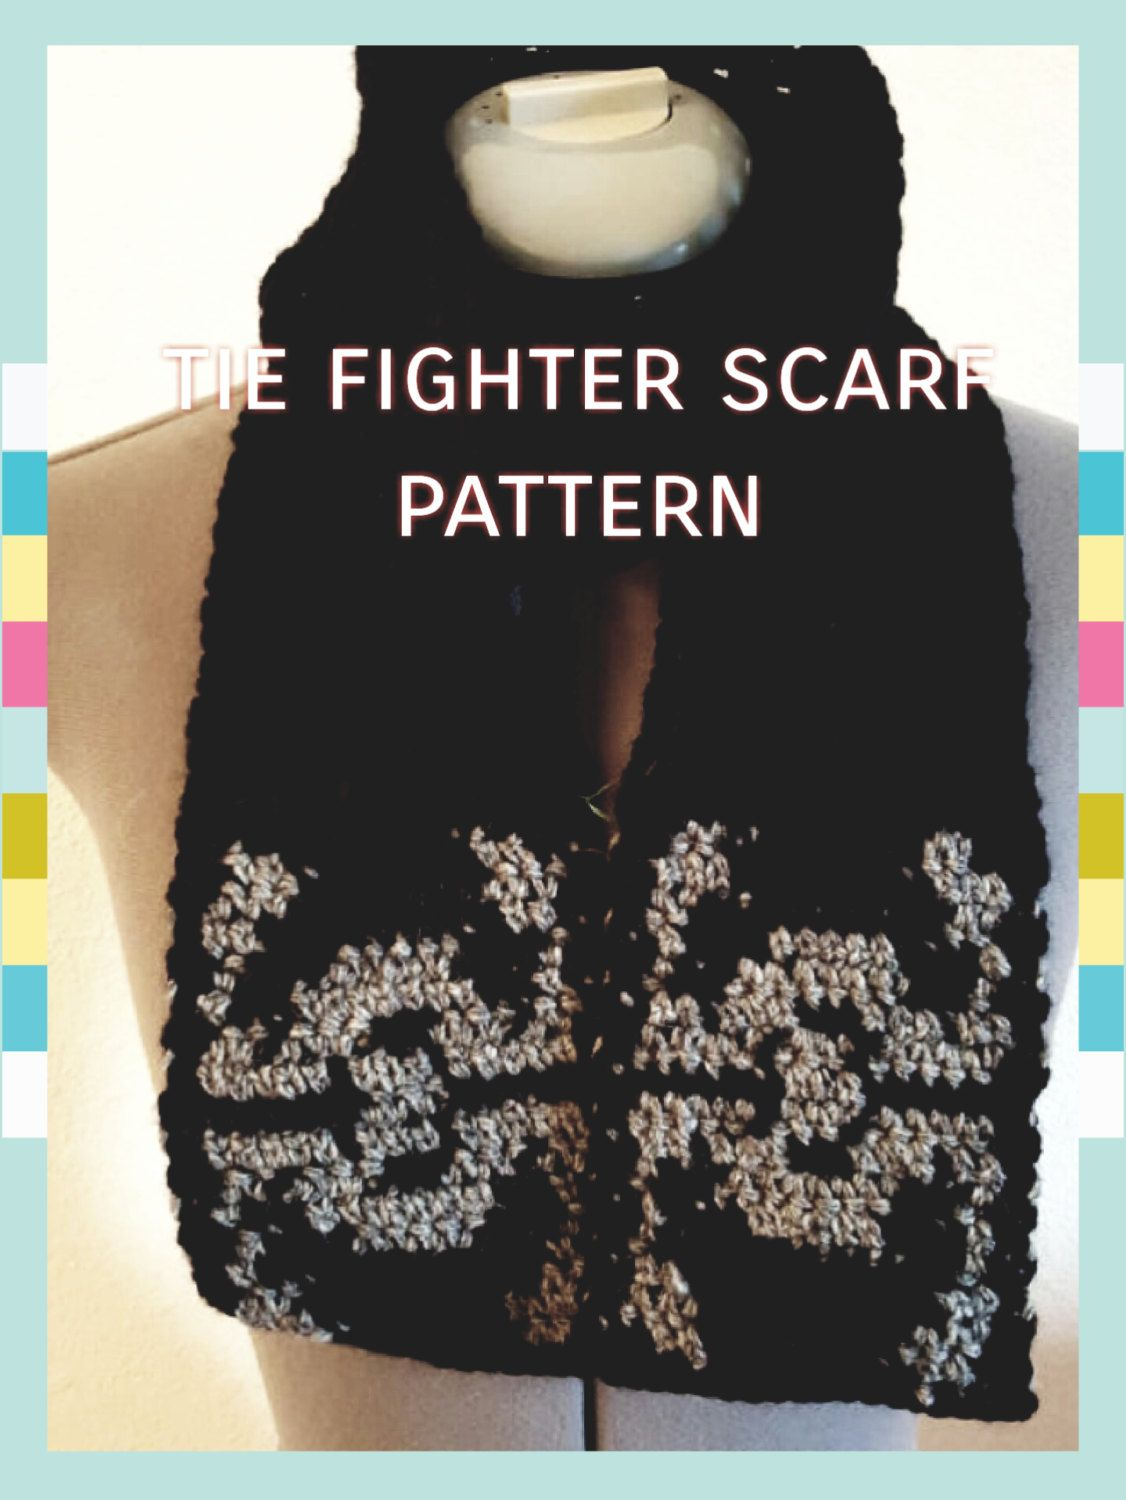 Tie fighter scarf pattern crocheted star wars inspired scarf tie fighter scarf pattern by crankyrooster on etsy star wars diy crochet star wars gifts handmade star wars gifts solutioingenieria Images